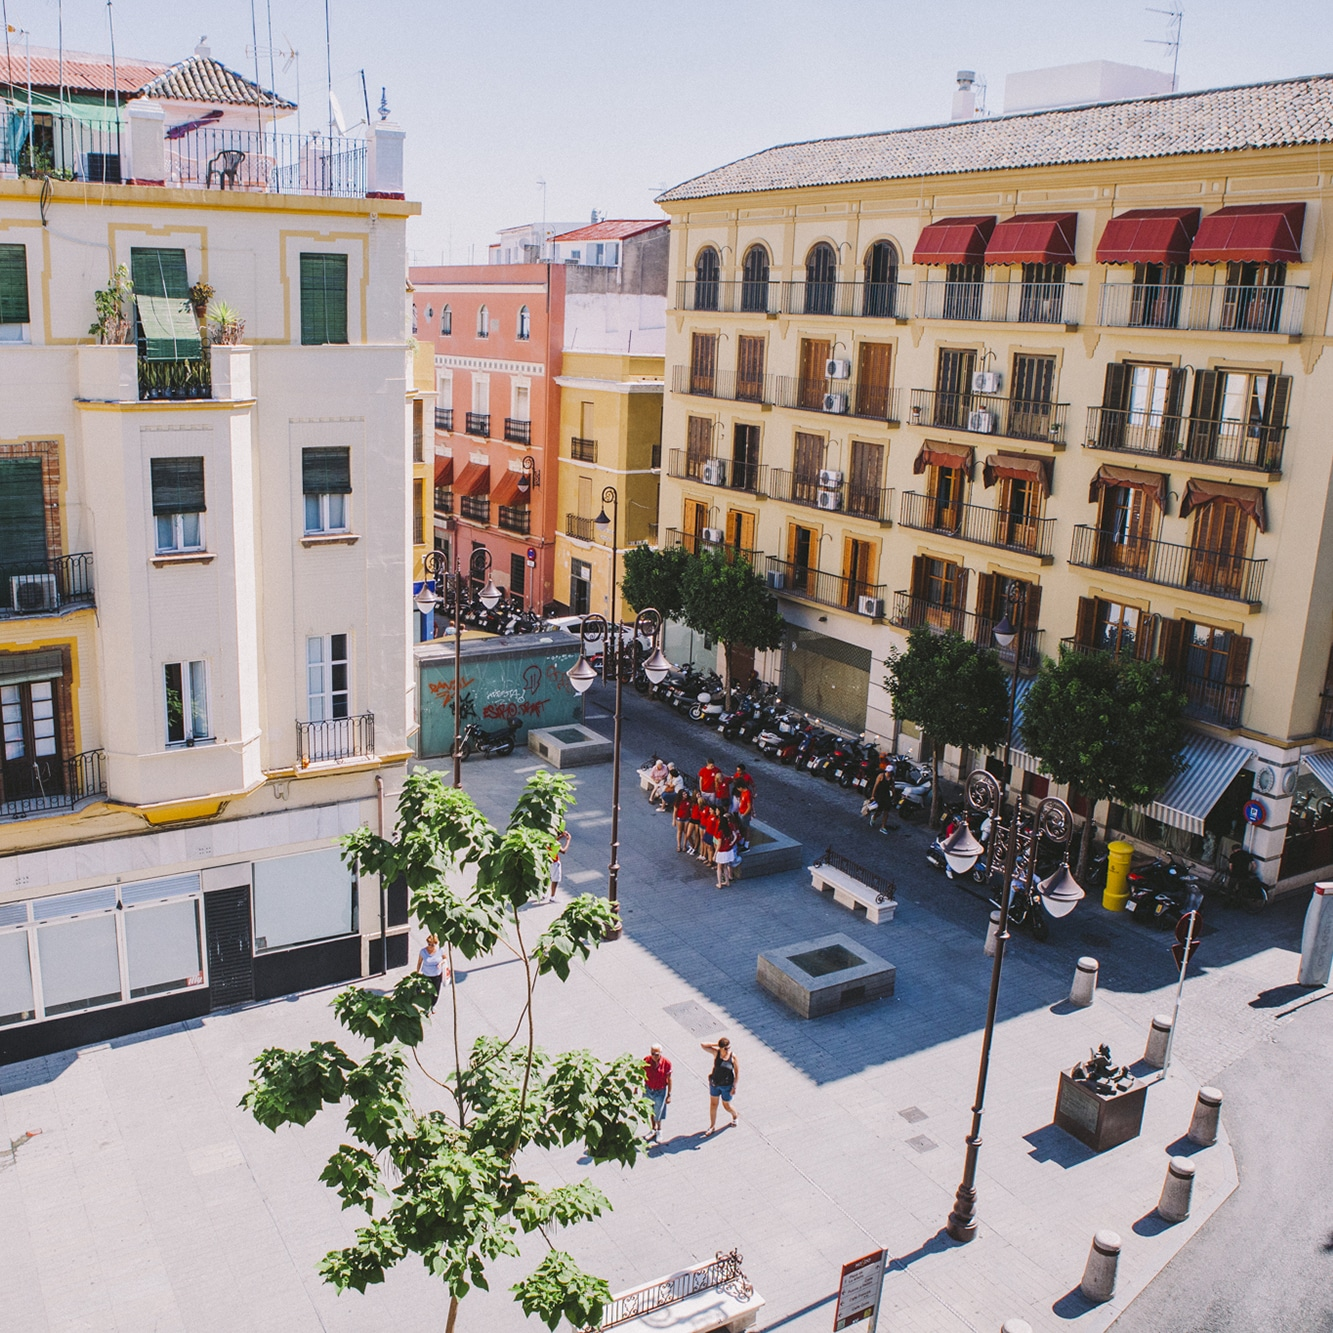 View from our Spanish school in Sevilla, Spain